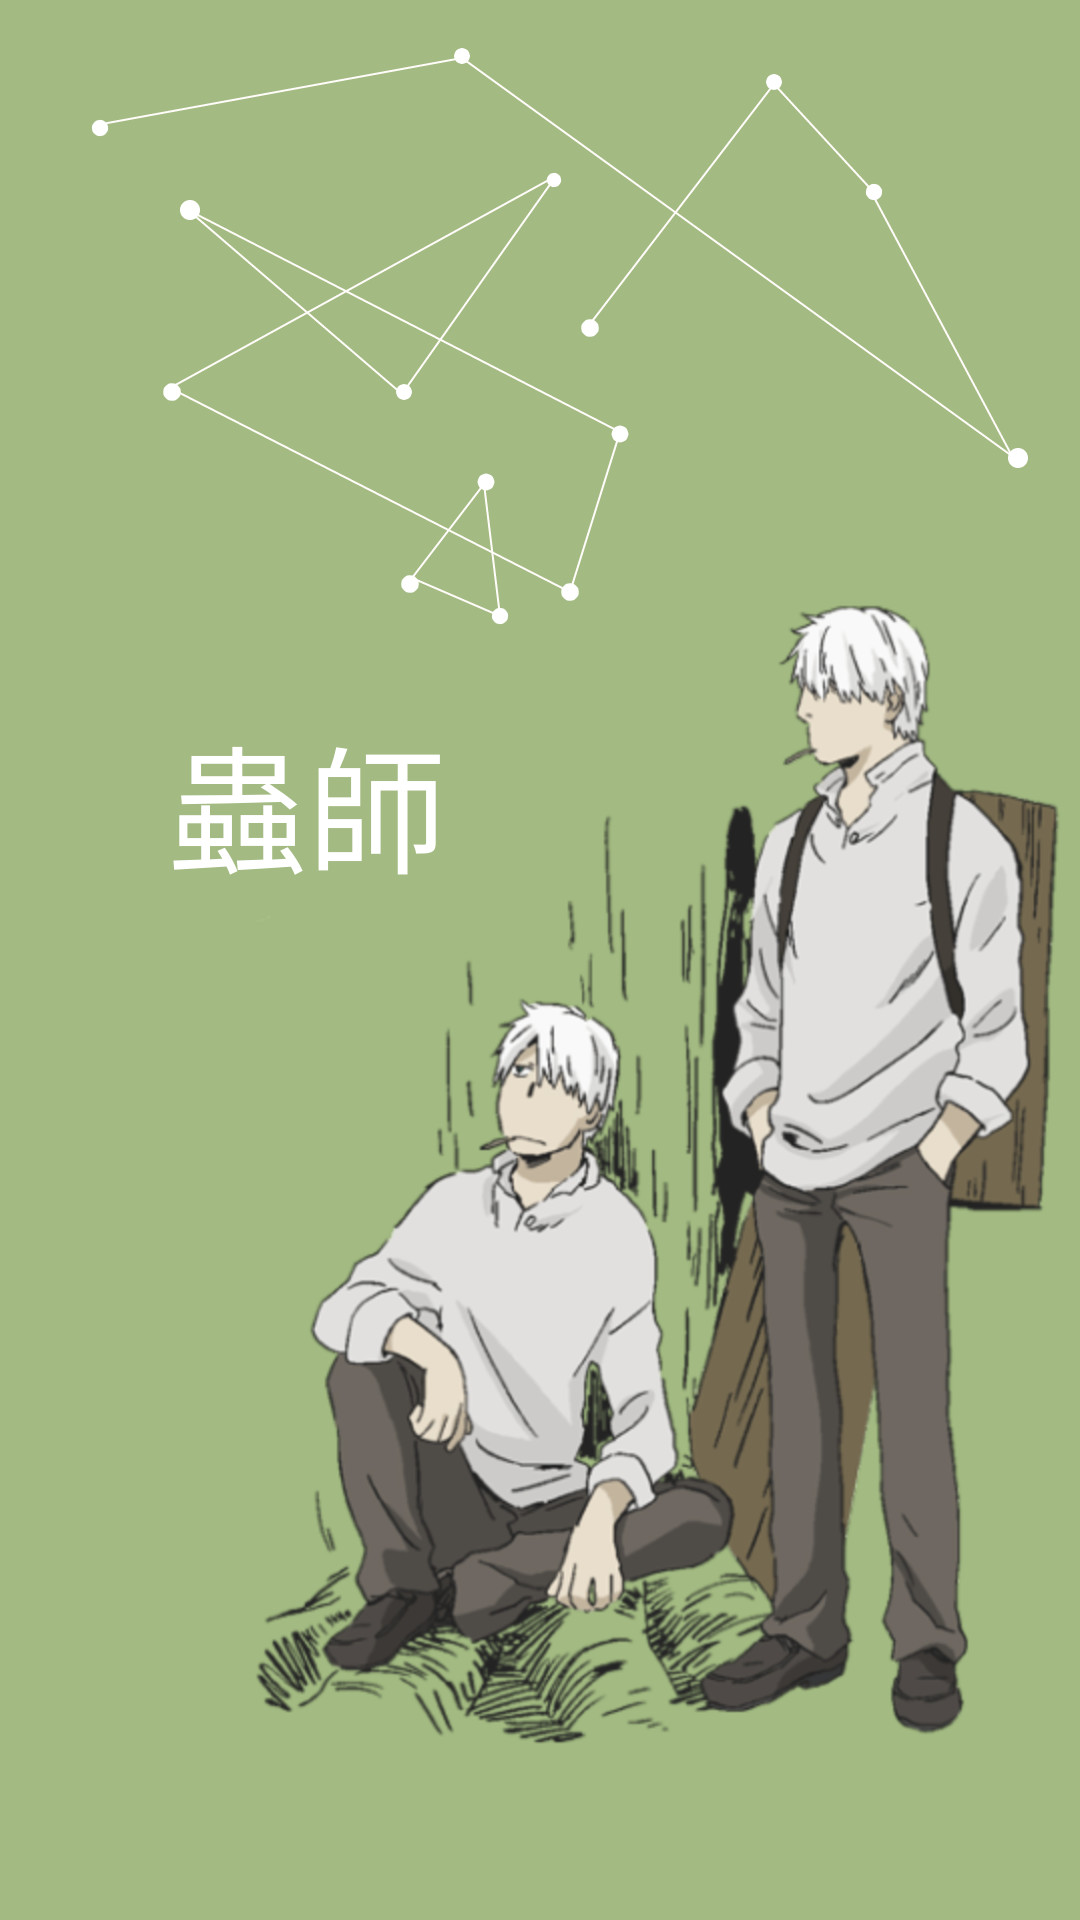 Res: 1080x1920, Mushishi mobile wallpapers/lockscreens